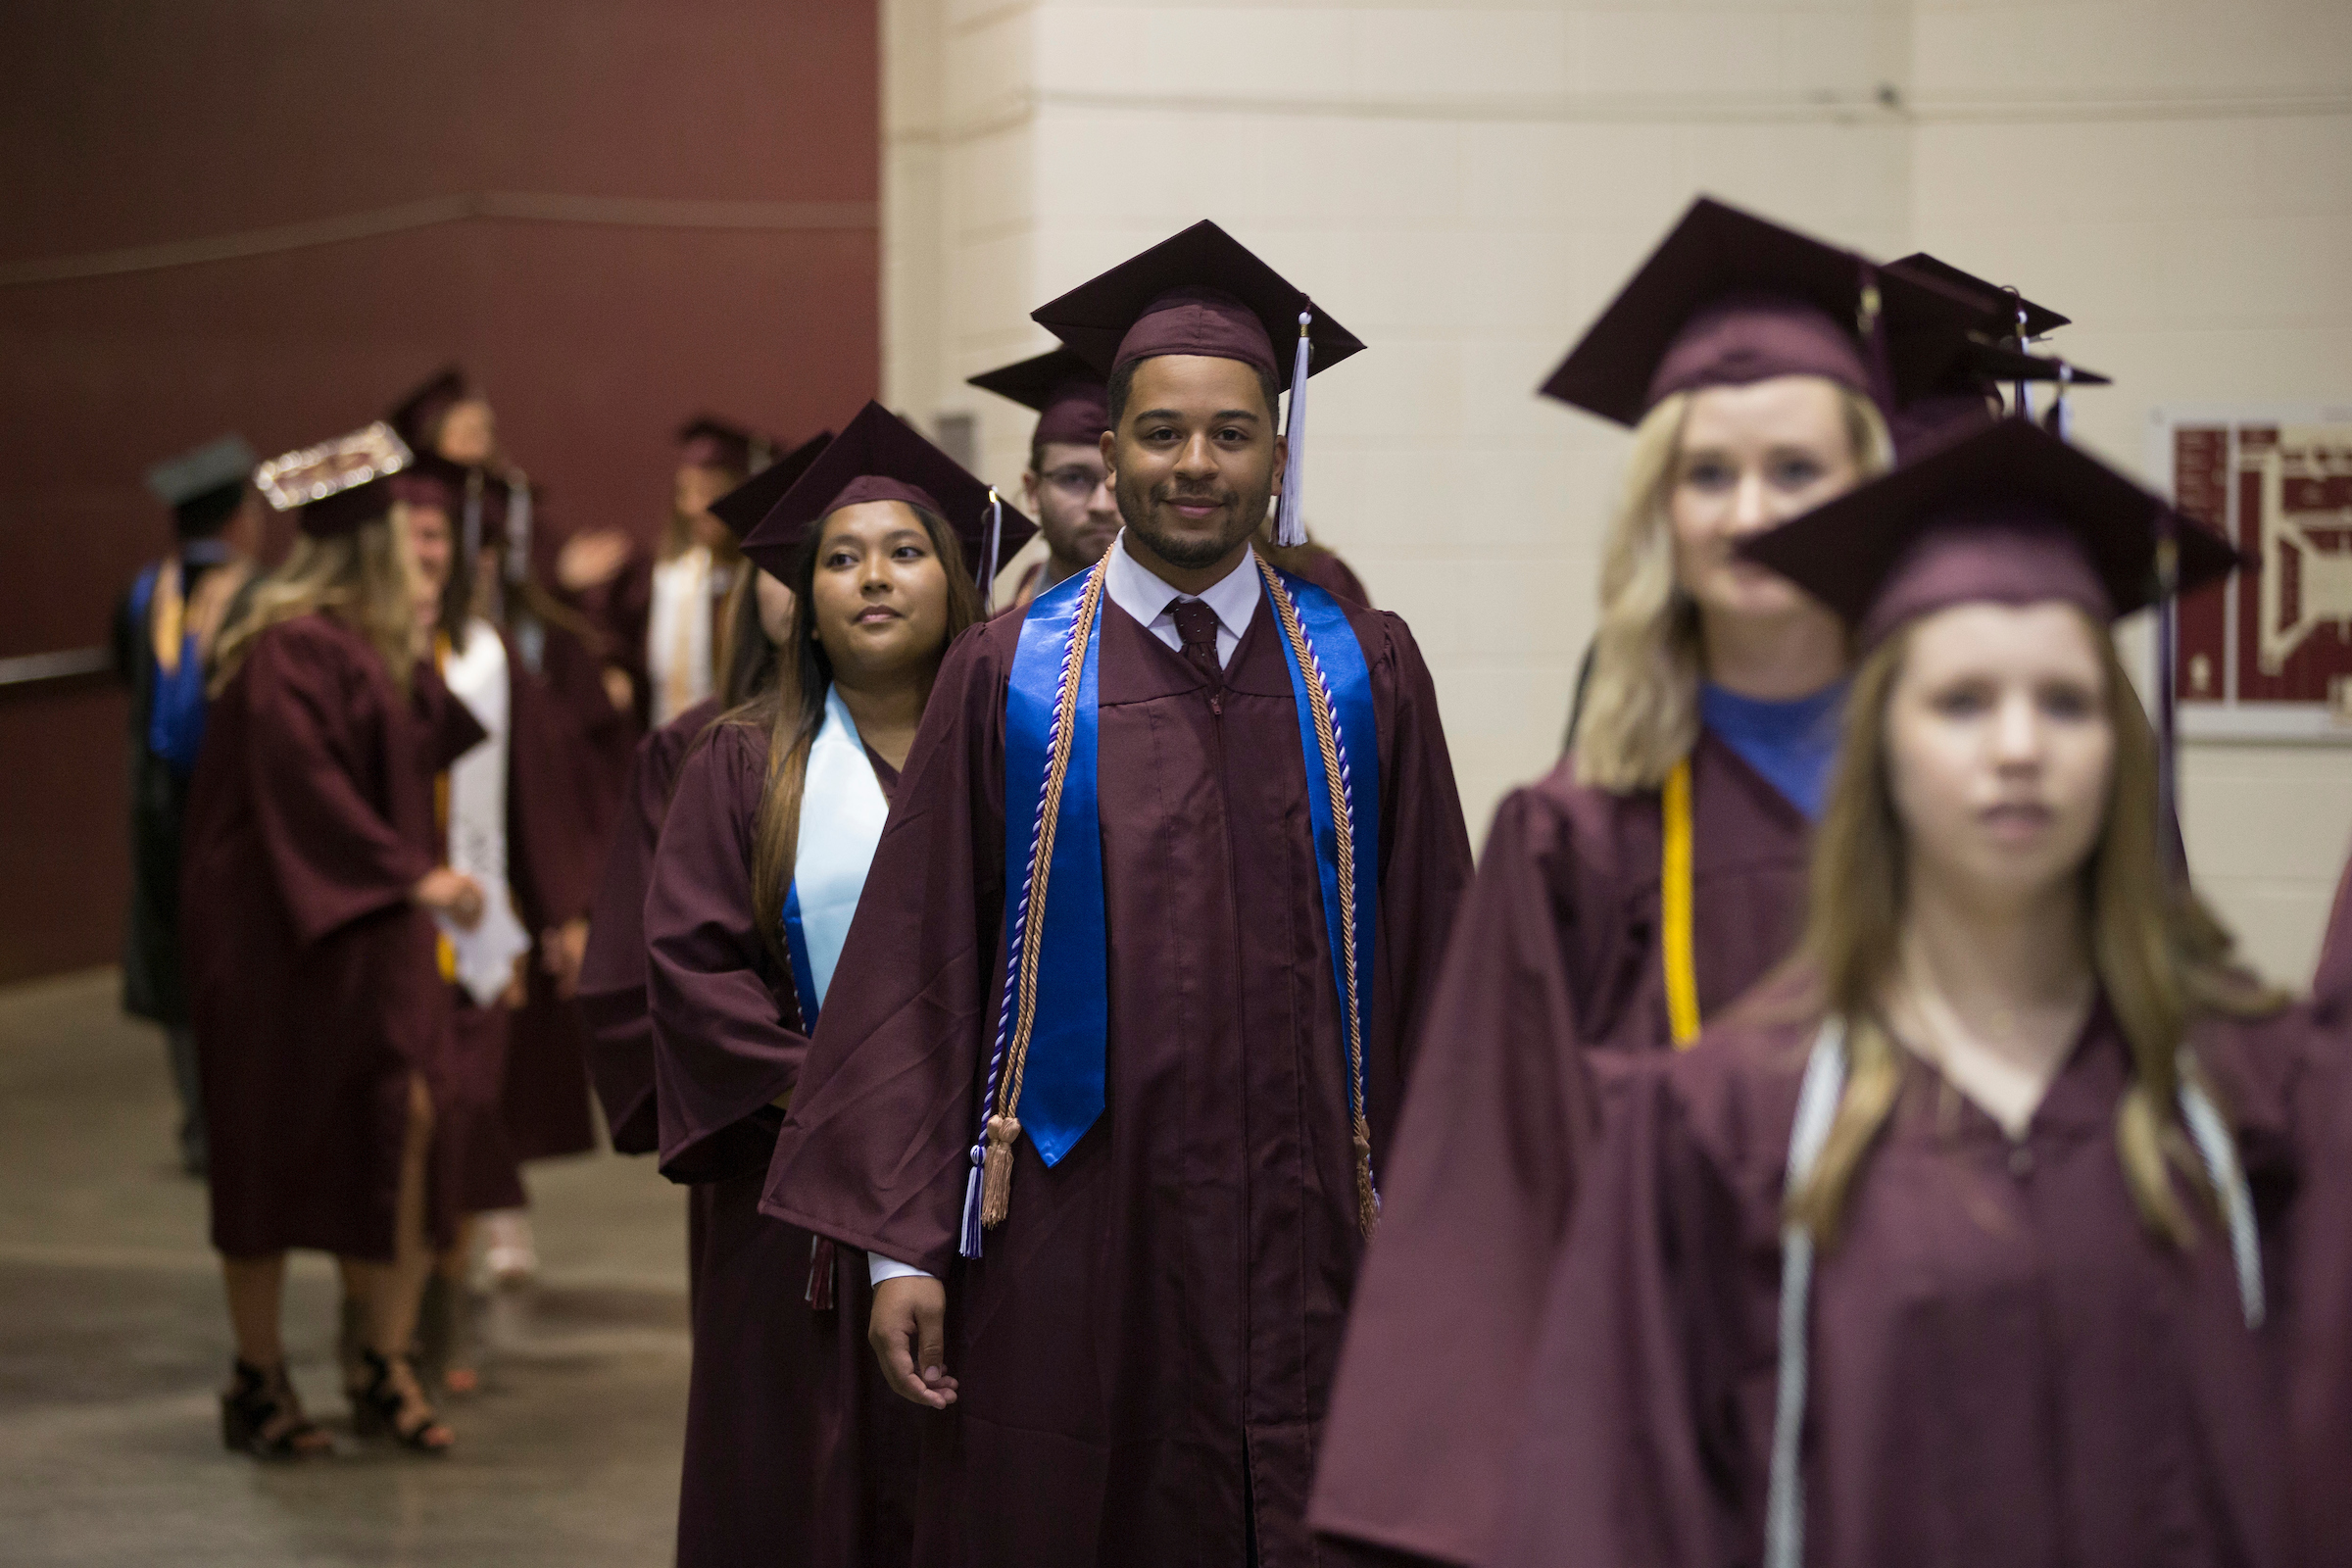 Students going to commencement